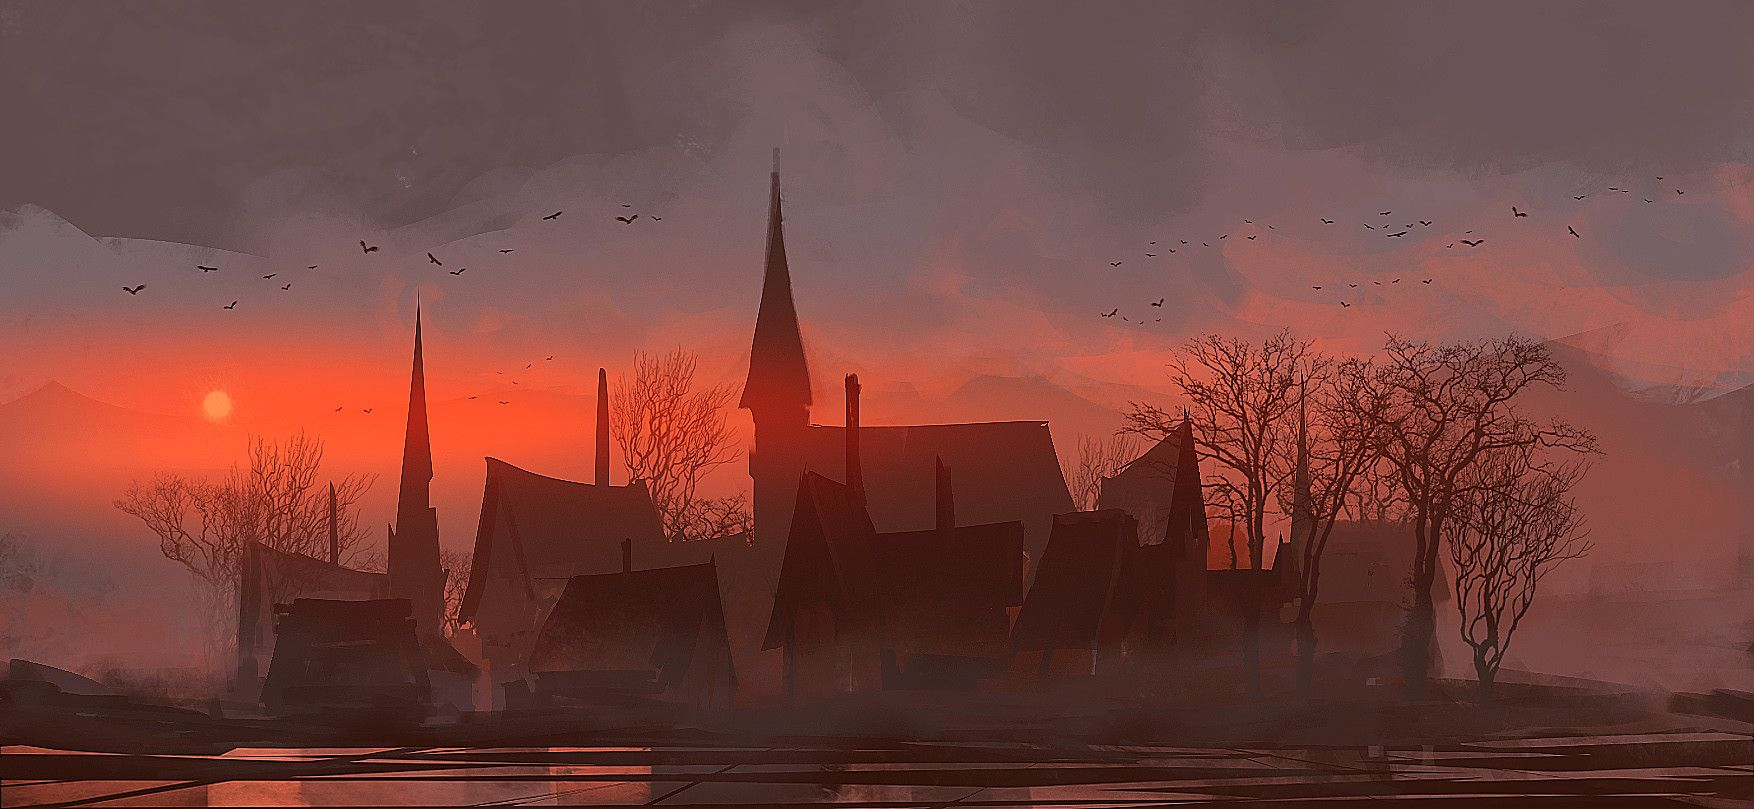 FEATURED ARTIST: romain flamand. Love this #speedpaint #digitalart